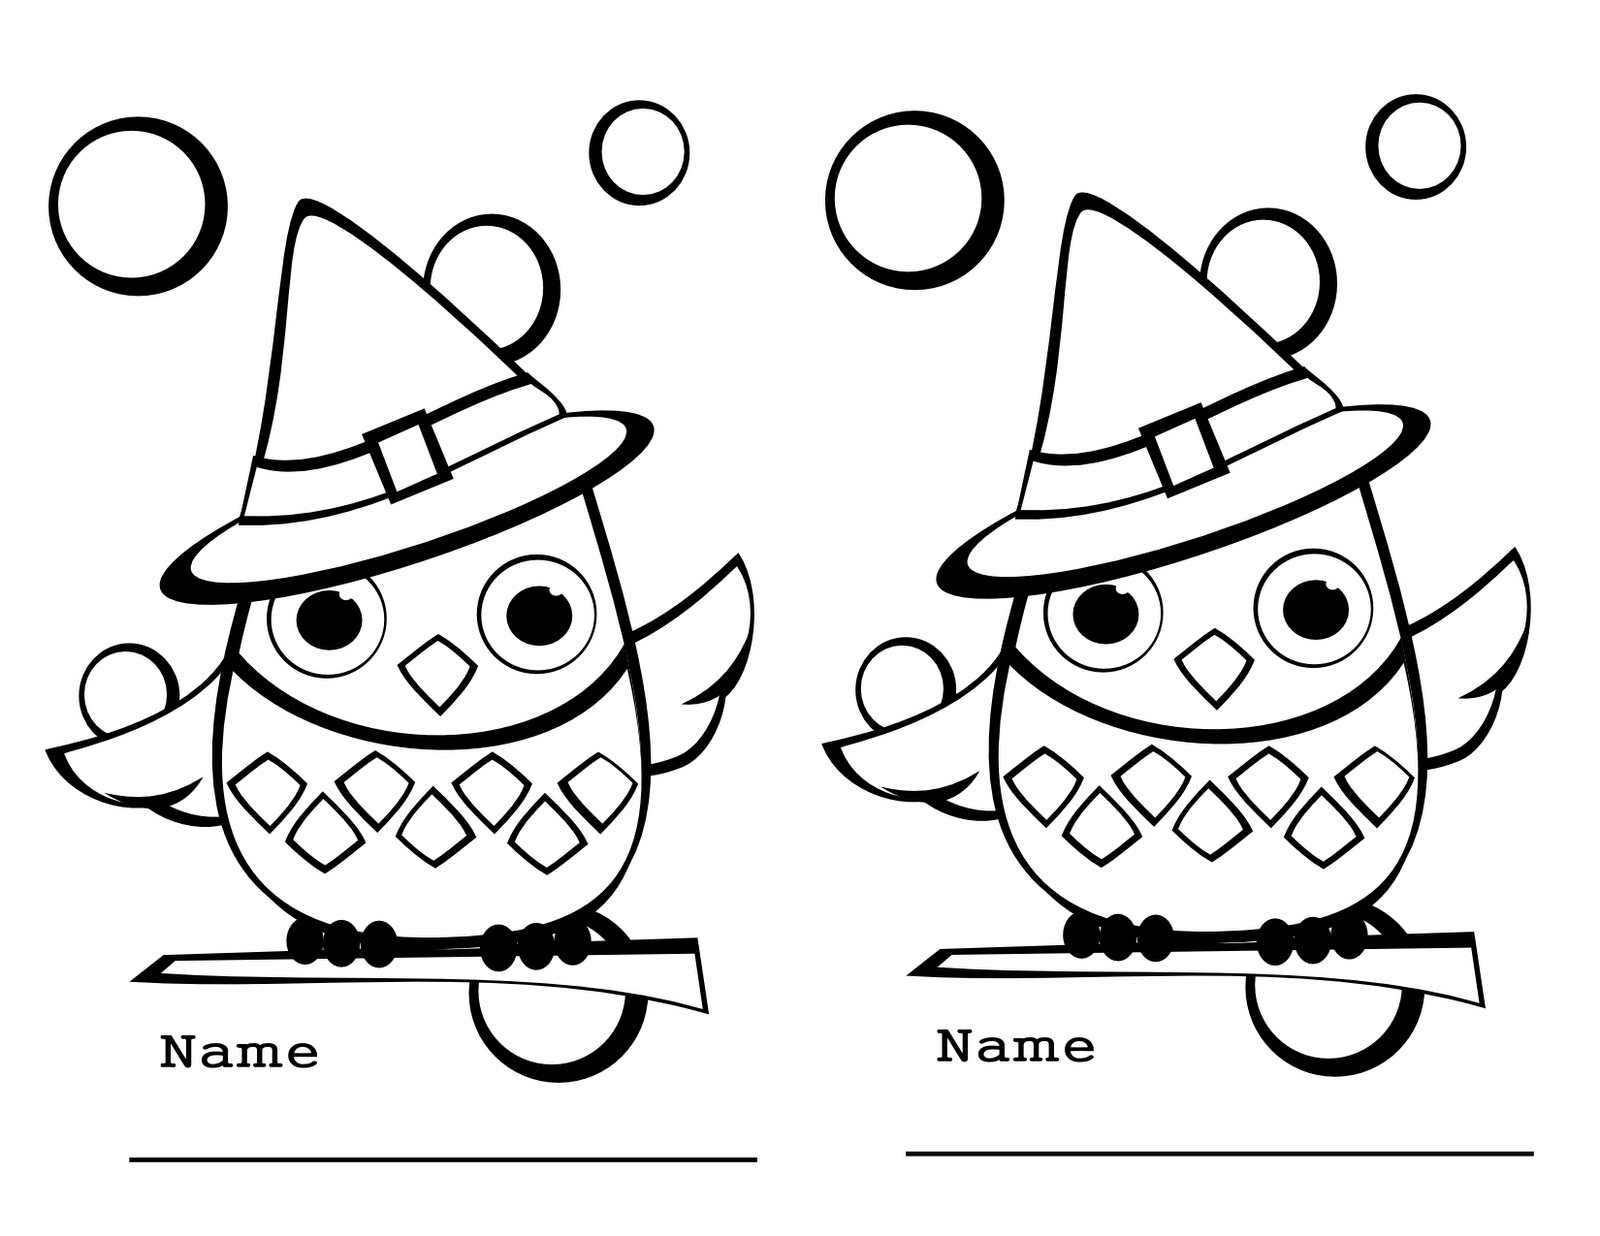 Free coloring pages for kindergarten printable - Free Coloring Pages For Kindergarten